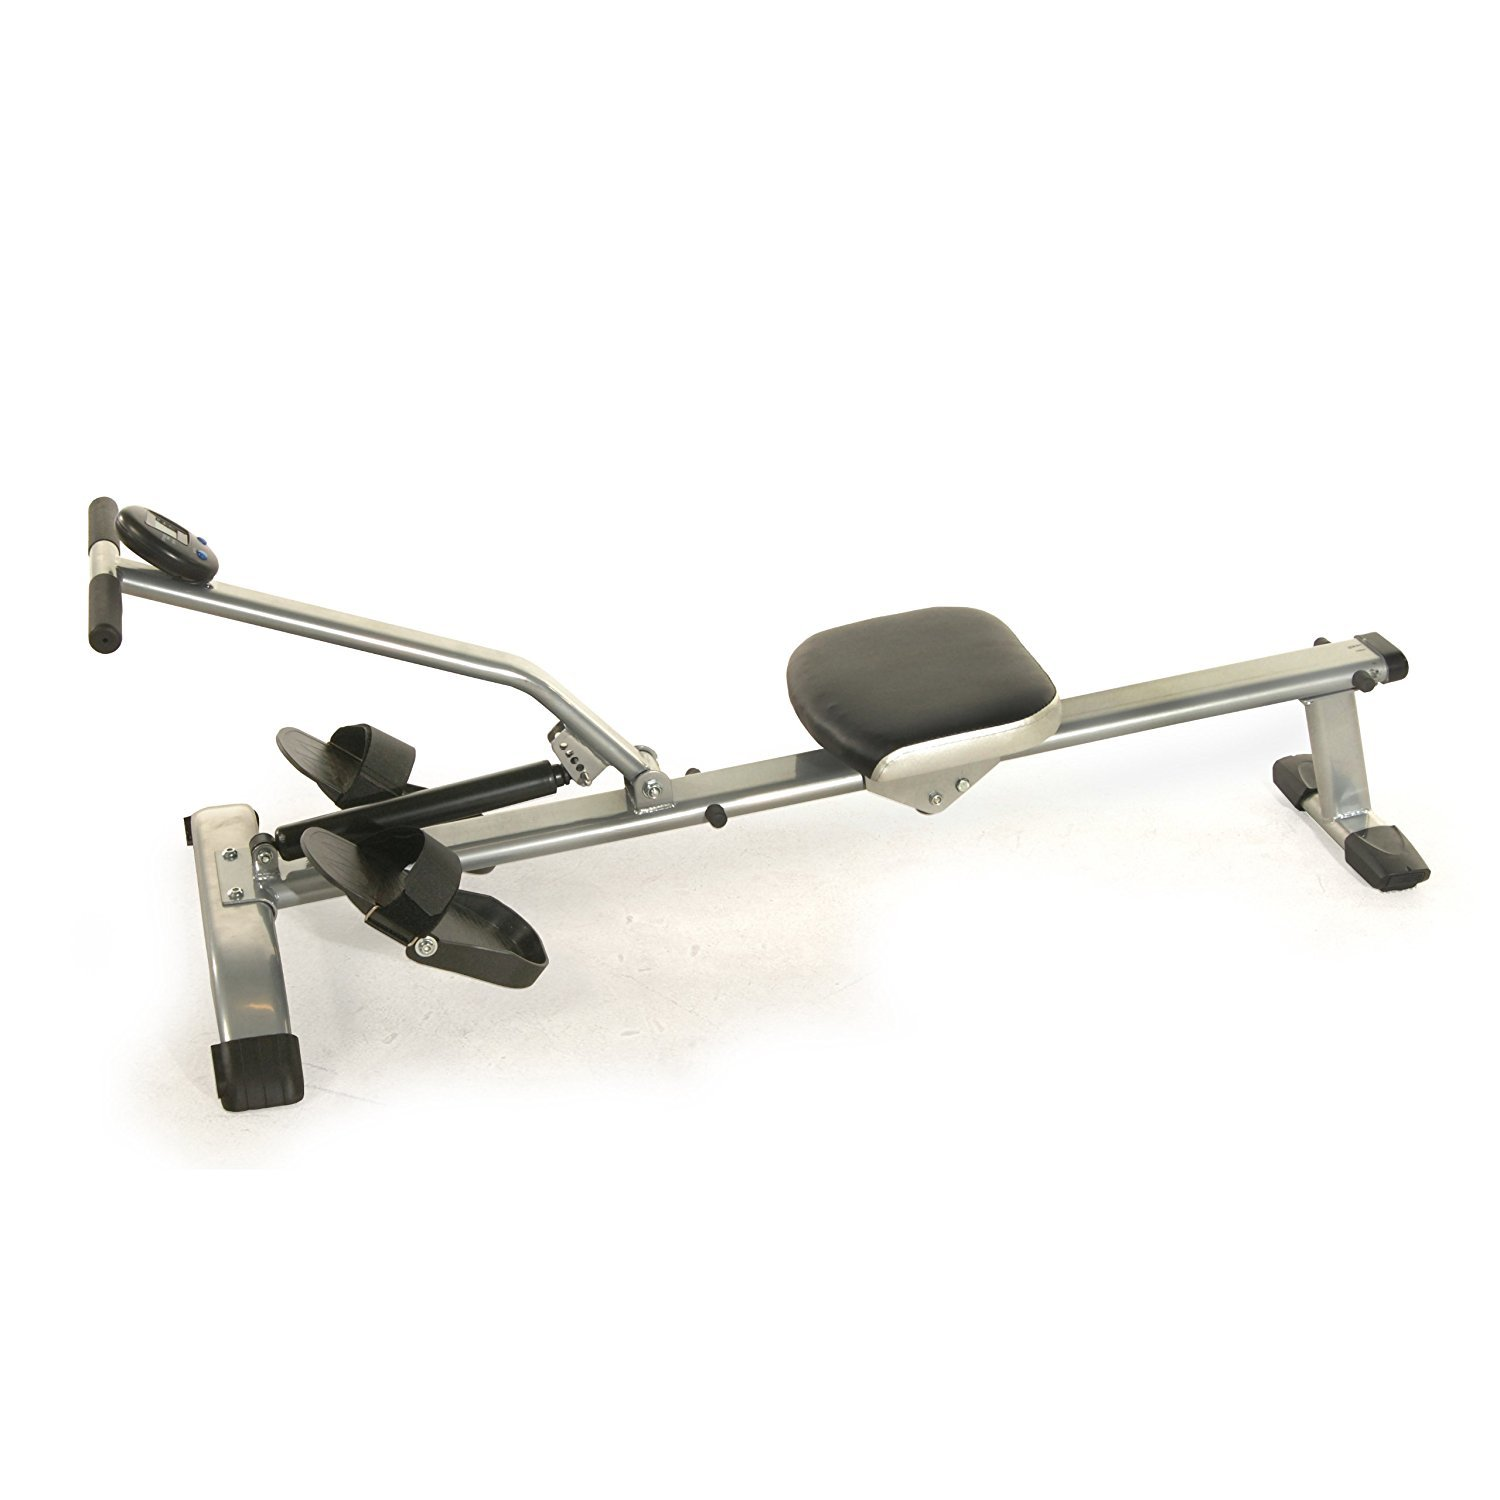 image showing the Stamina InMotion Rower